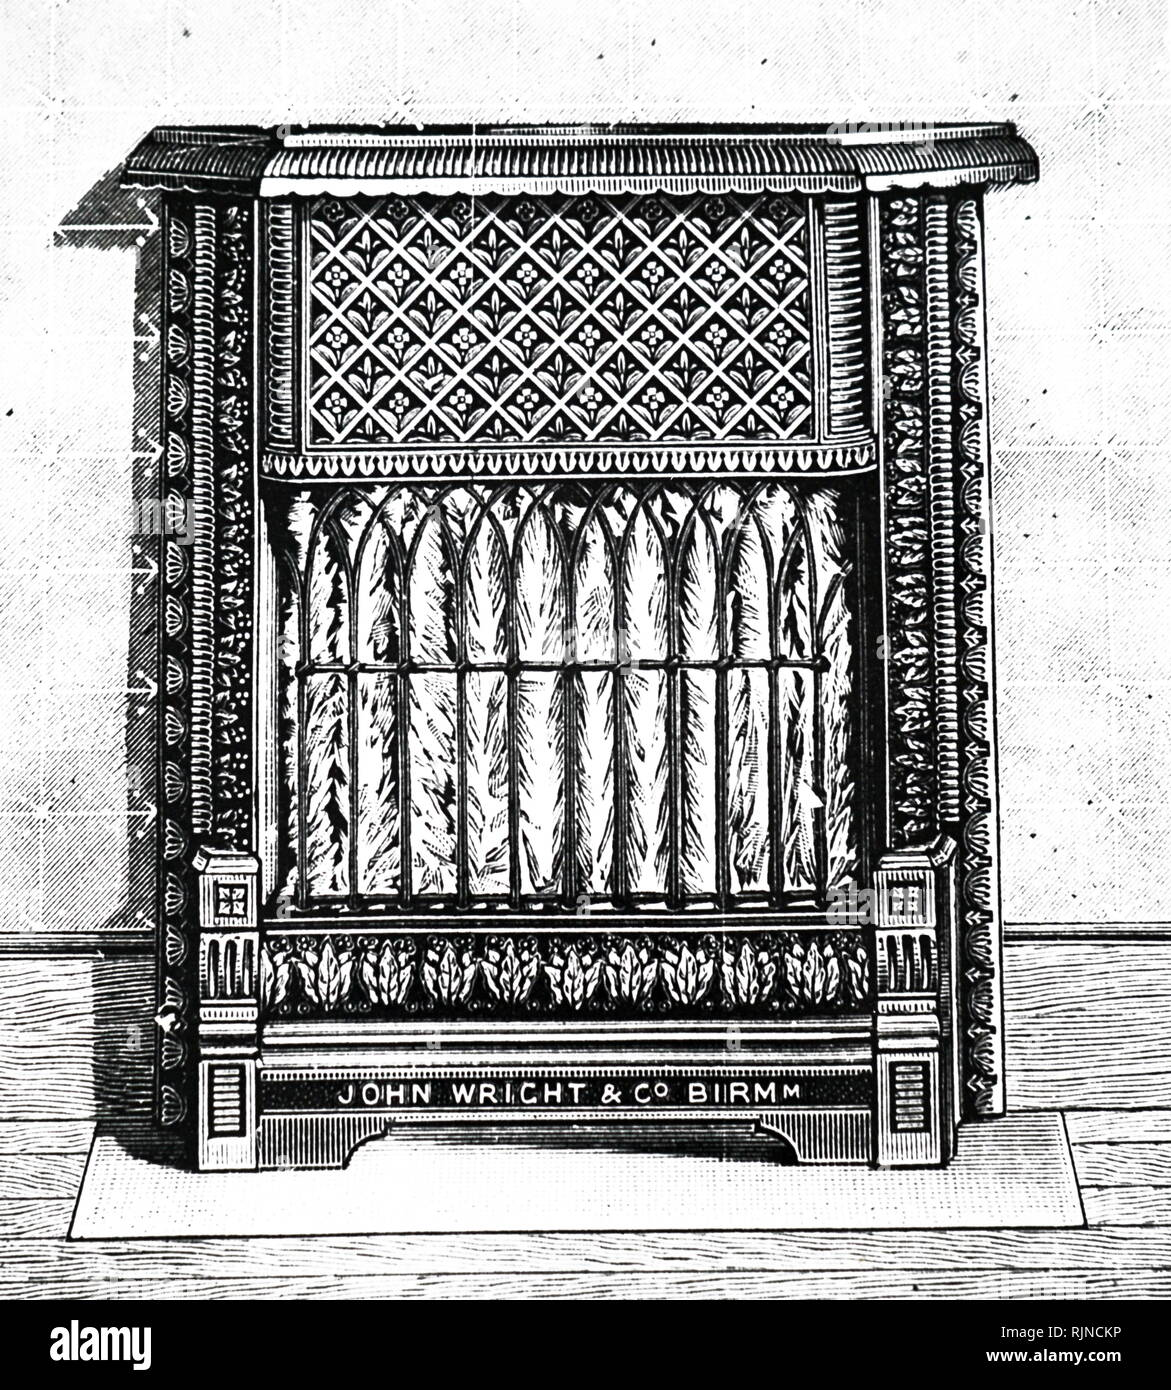 An engraving depicting an incandescent gas fire with a flat slab of fire clay studded with asbestos knobs. Dated 19th century - Stock Image